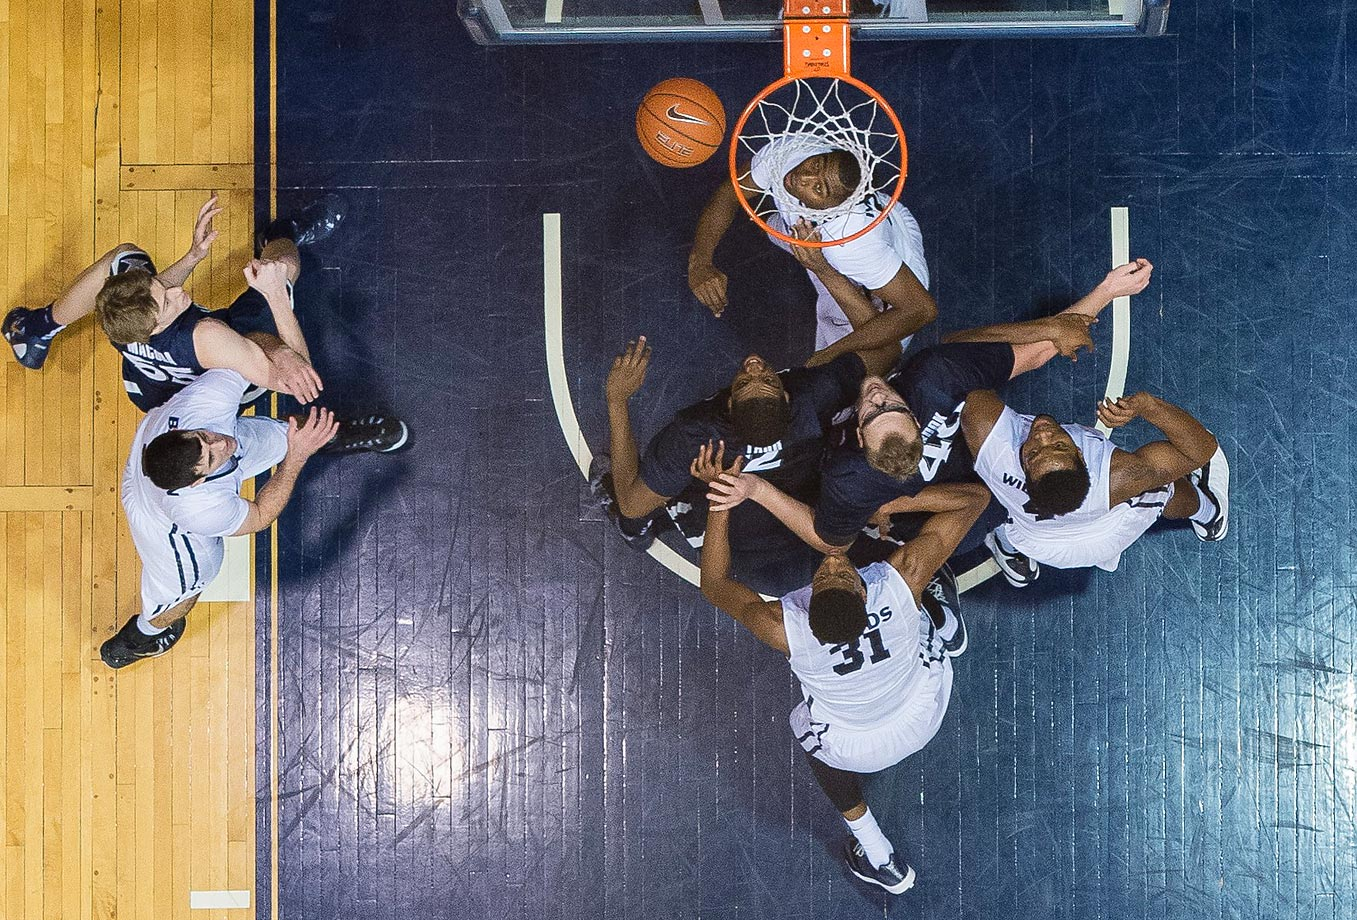 Butler Bulldogs forward Kelan Martin looks up through the net as Butler Bulldogs forwards Kameron Woods (31) and Tyler Wideman (4) battle Xavier Musketeers forward James Farr (2) and center Matt Stainbrook (40) battle for position.